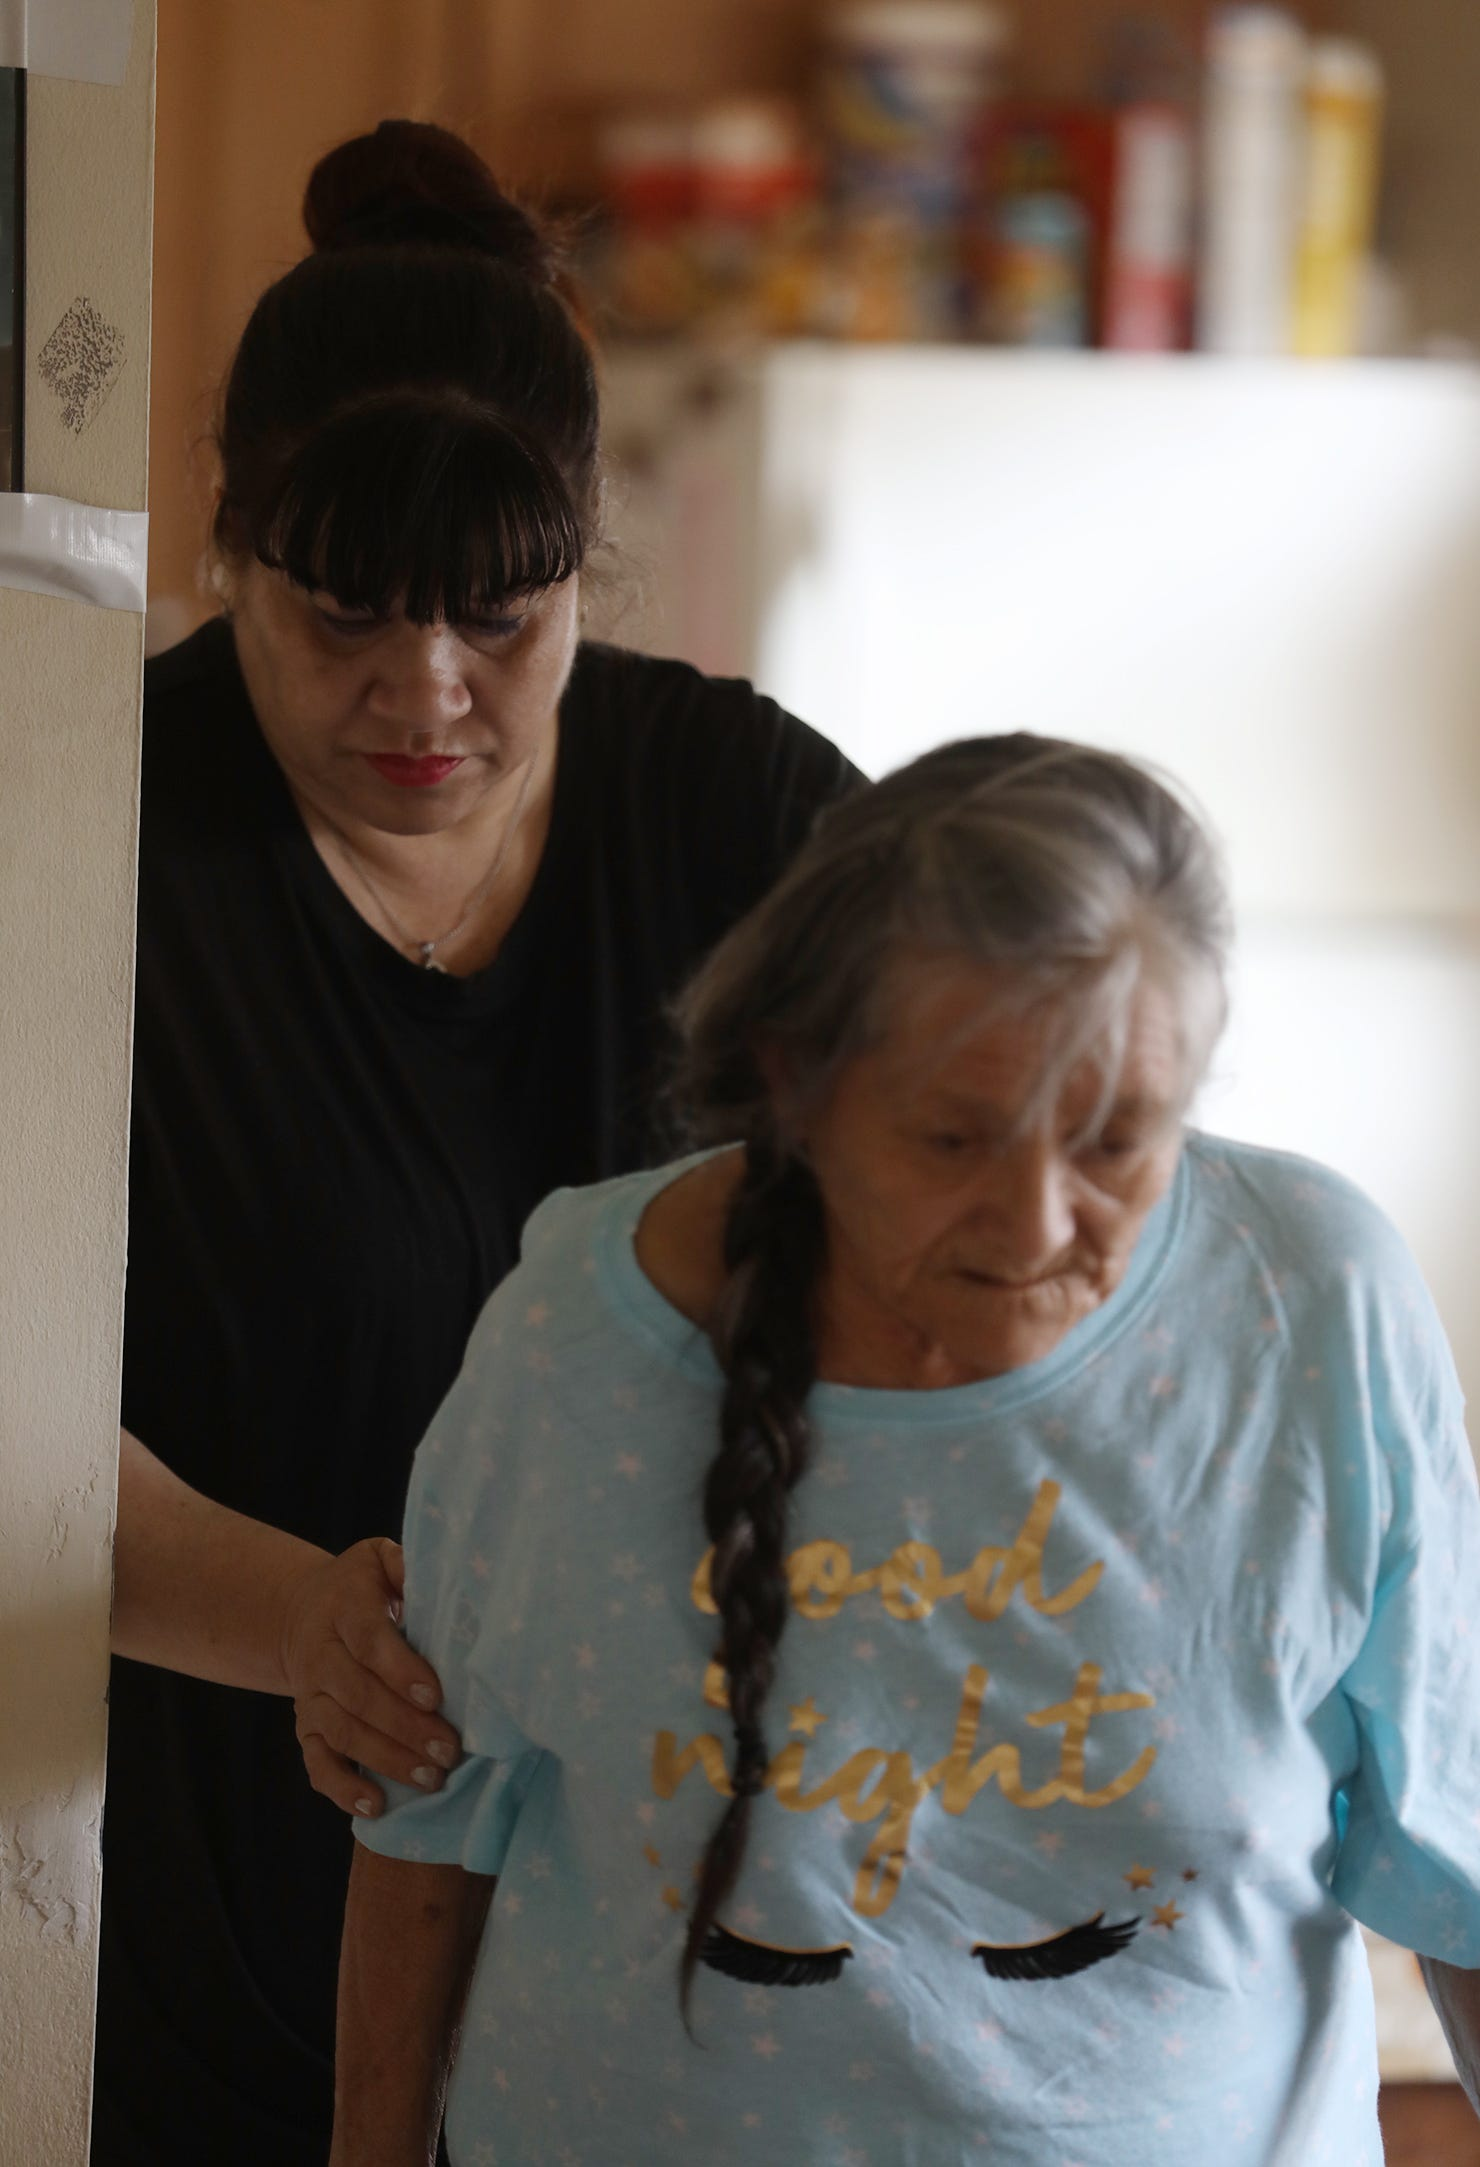 Carmen Moreno helps her mother, Maria Rodriguez, into the living room after feeding her a snack, Wednesday, April 15, 2020.  She and her sister, Nancy Moreno. share caretaking of their mother, who has dementia and diabetes, and their father, Angel Moreno.